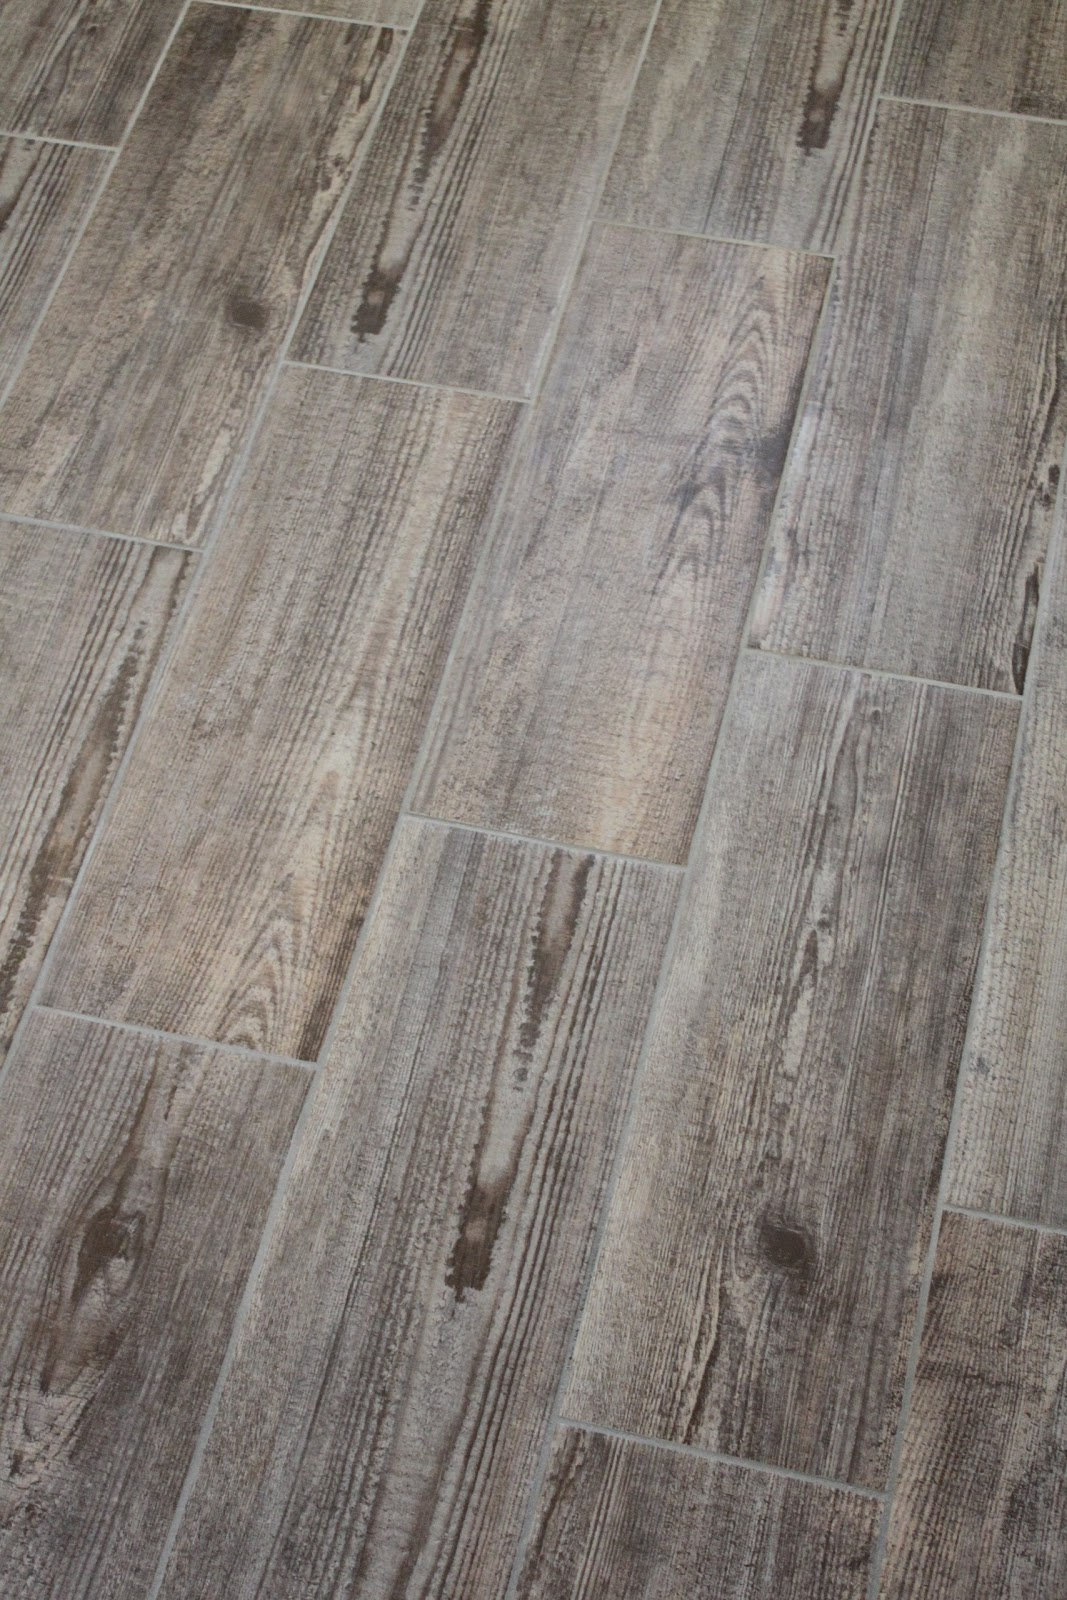 Bathroom update happenstance home Wood porcelain tile planks